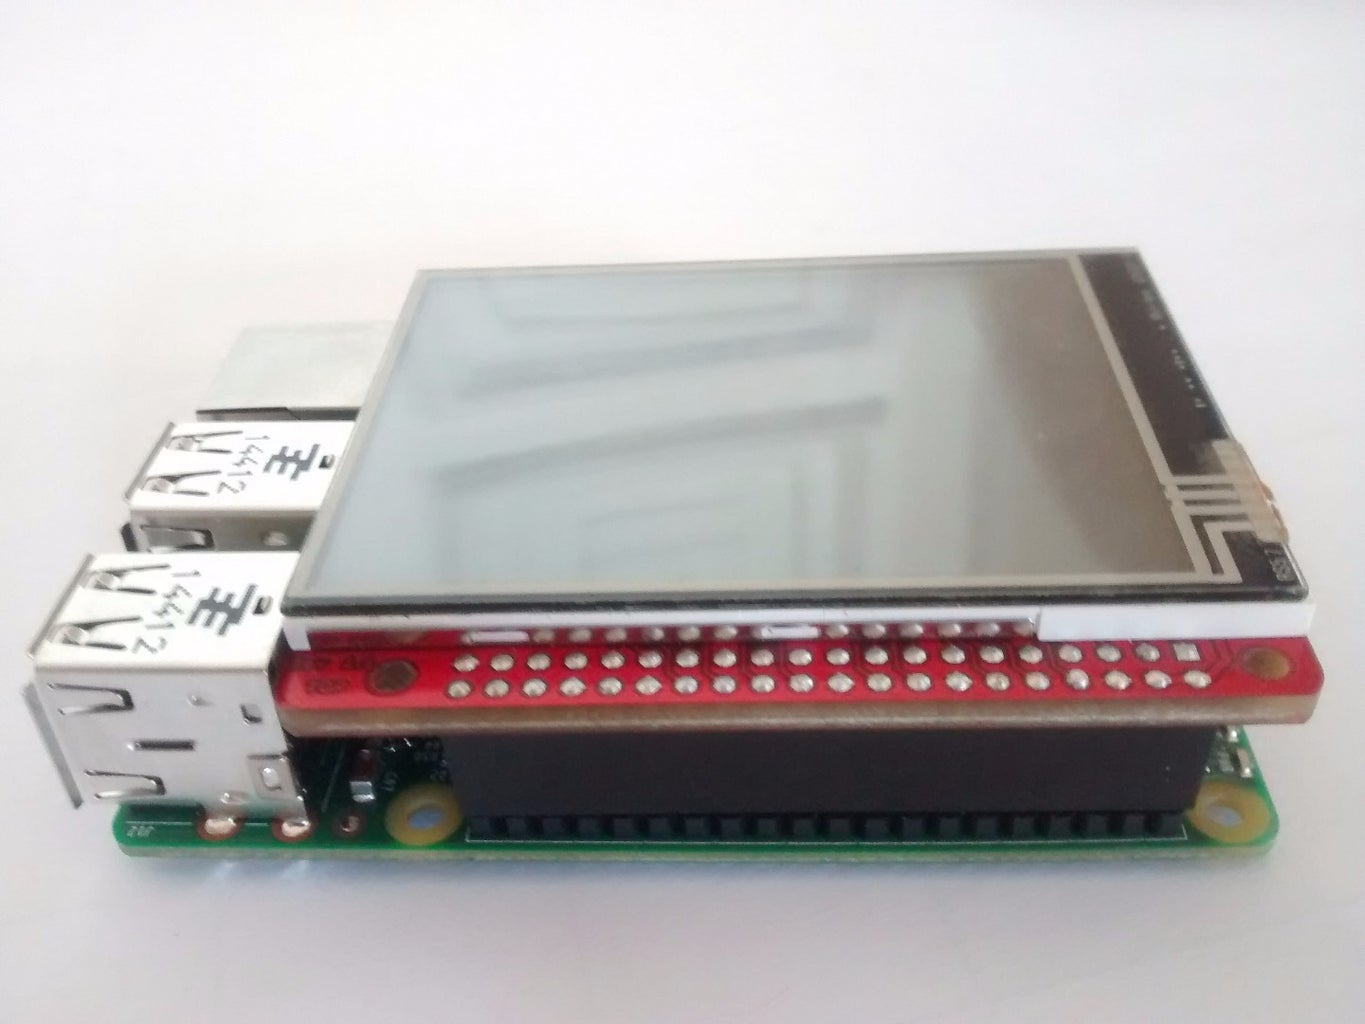 Connect the Touchscreen to the Raspberry Pi